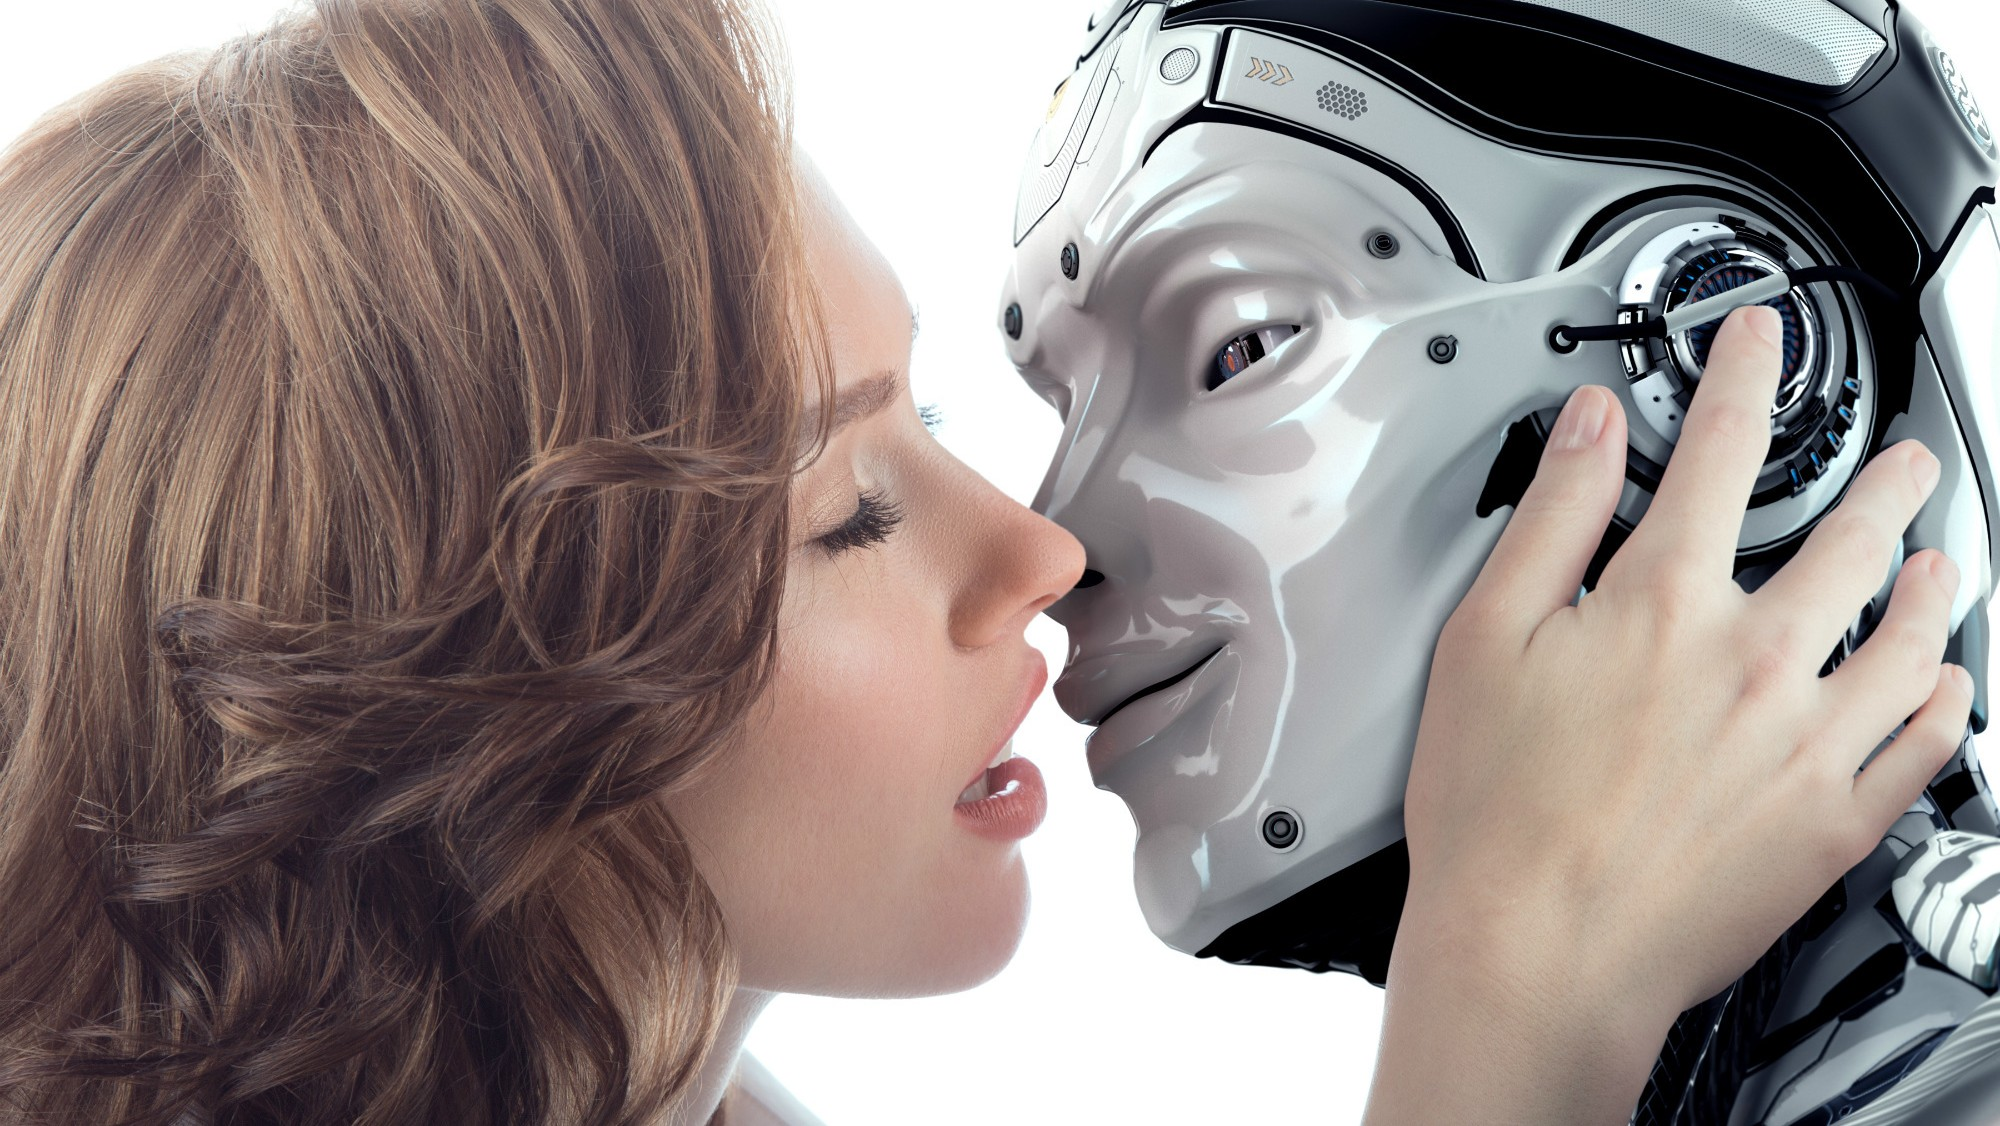 ¿Estamos listos para la vida sexual con robots de Inteligencia Artificial?